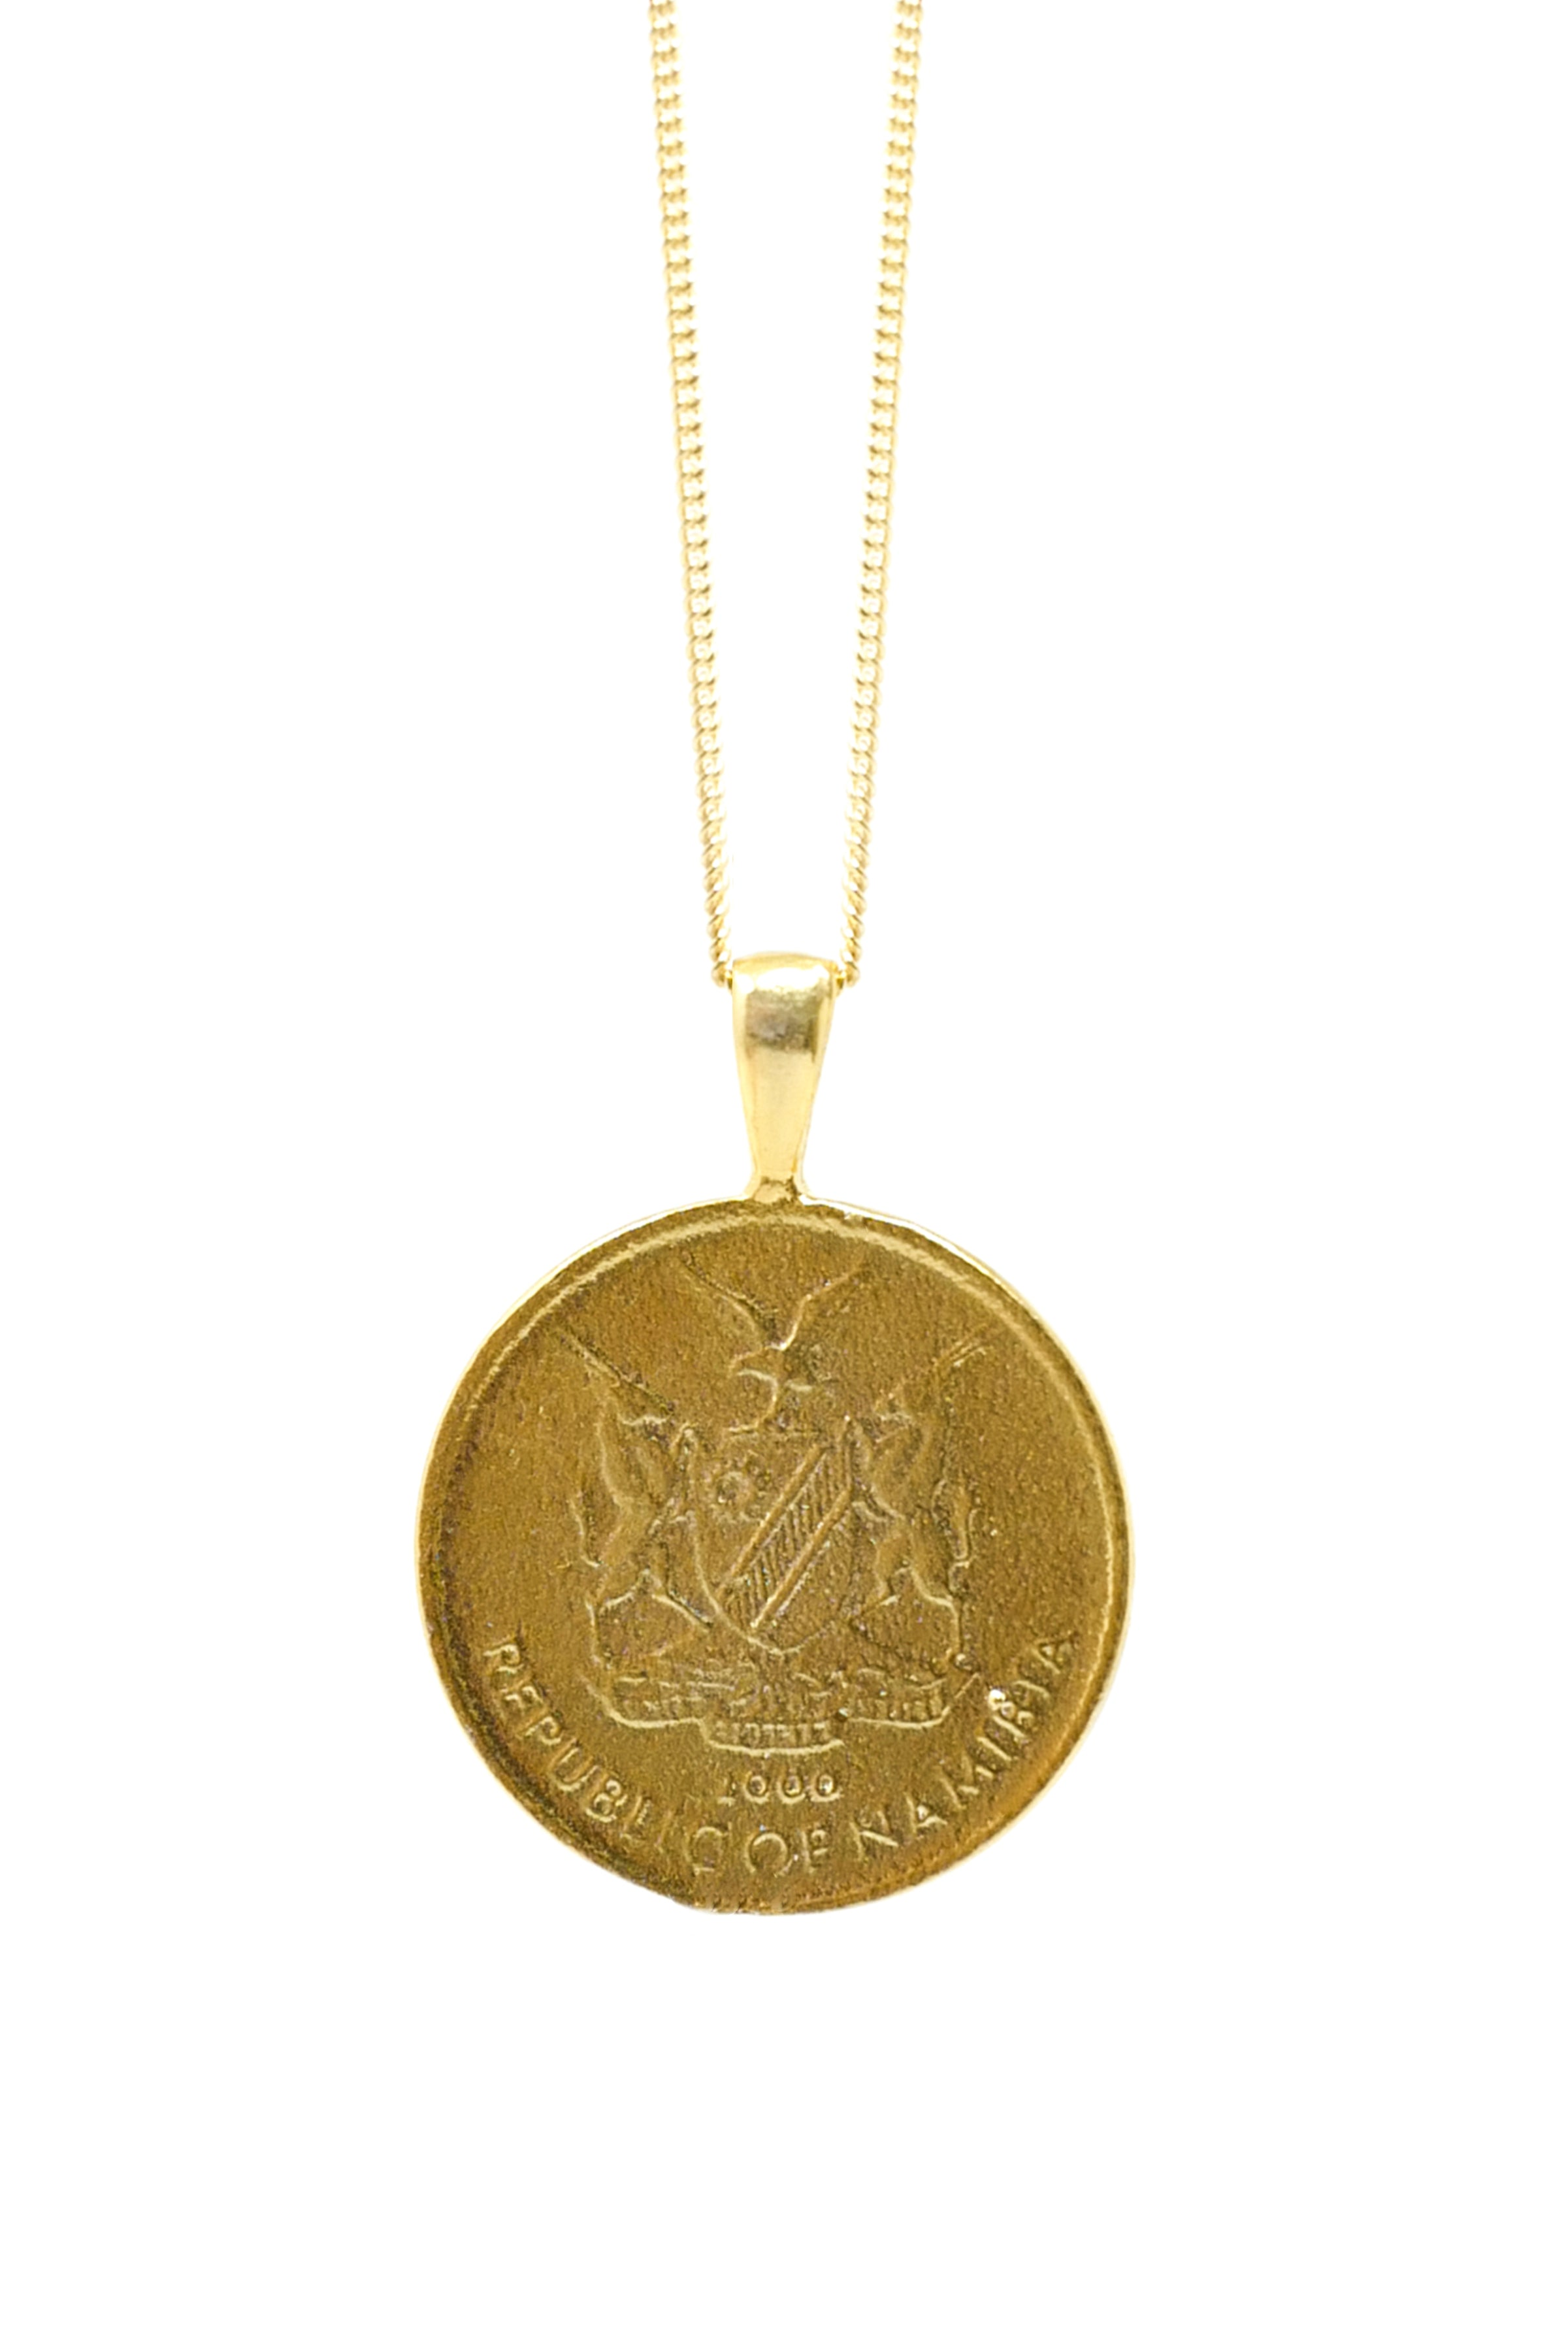 THE NAMIBIA Coin Necklace